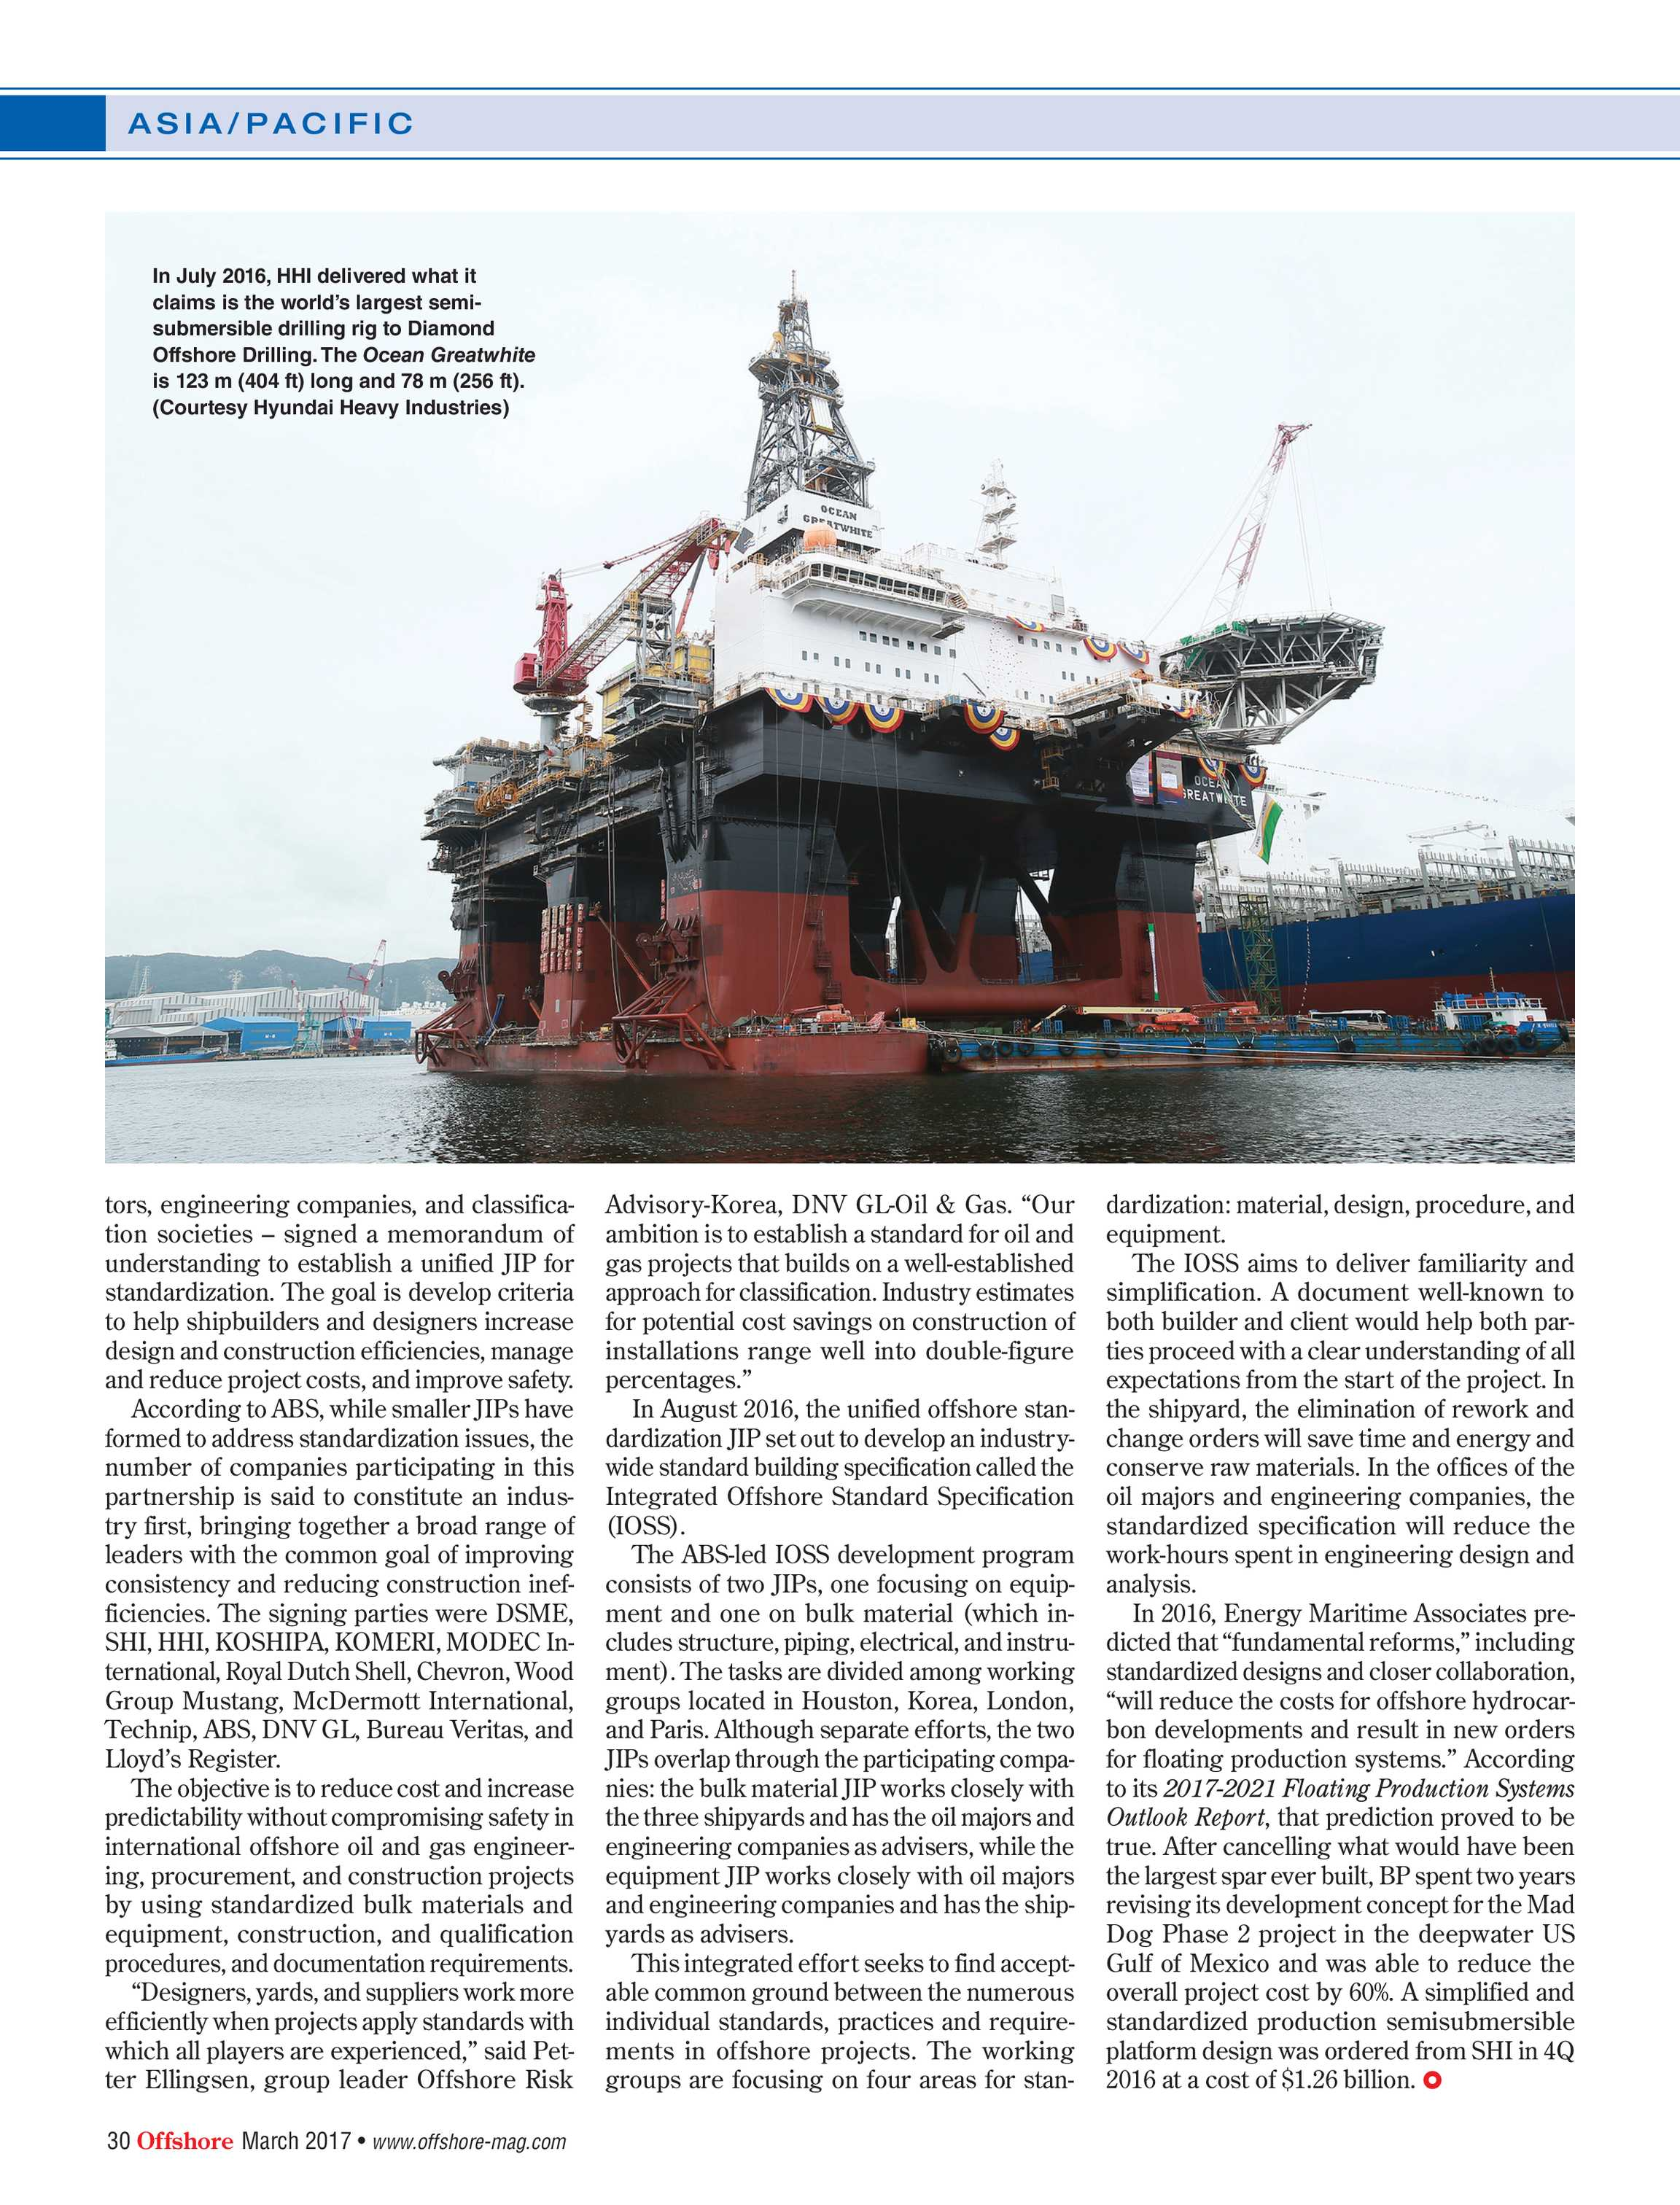 Drilling Today Drilling Magazine July 2015 page 68 t